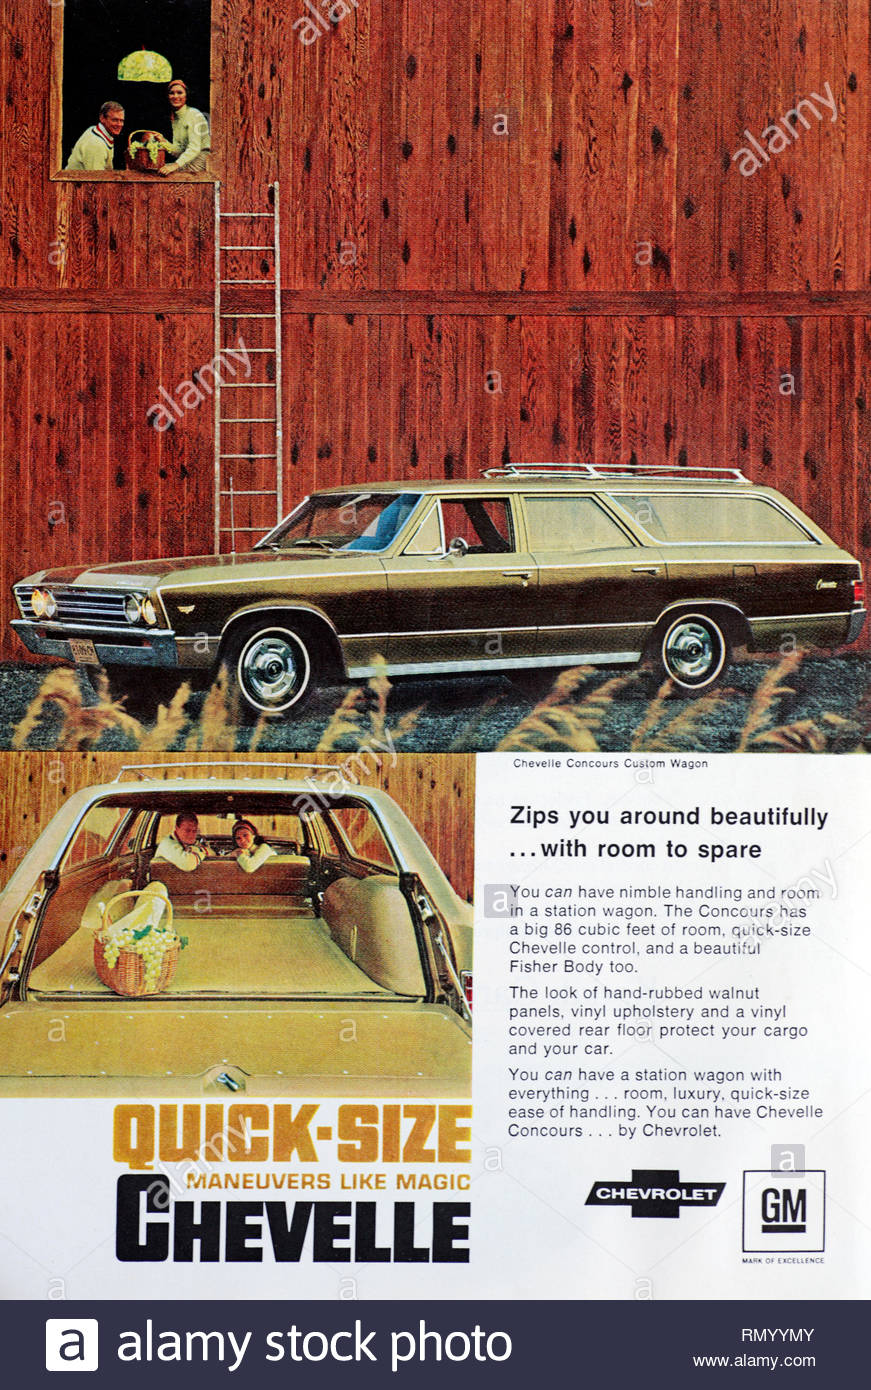 Vintage advertising for the Chevrolet Chevelle Concours Custom Wagon Car 1966 - Stock Image